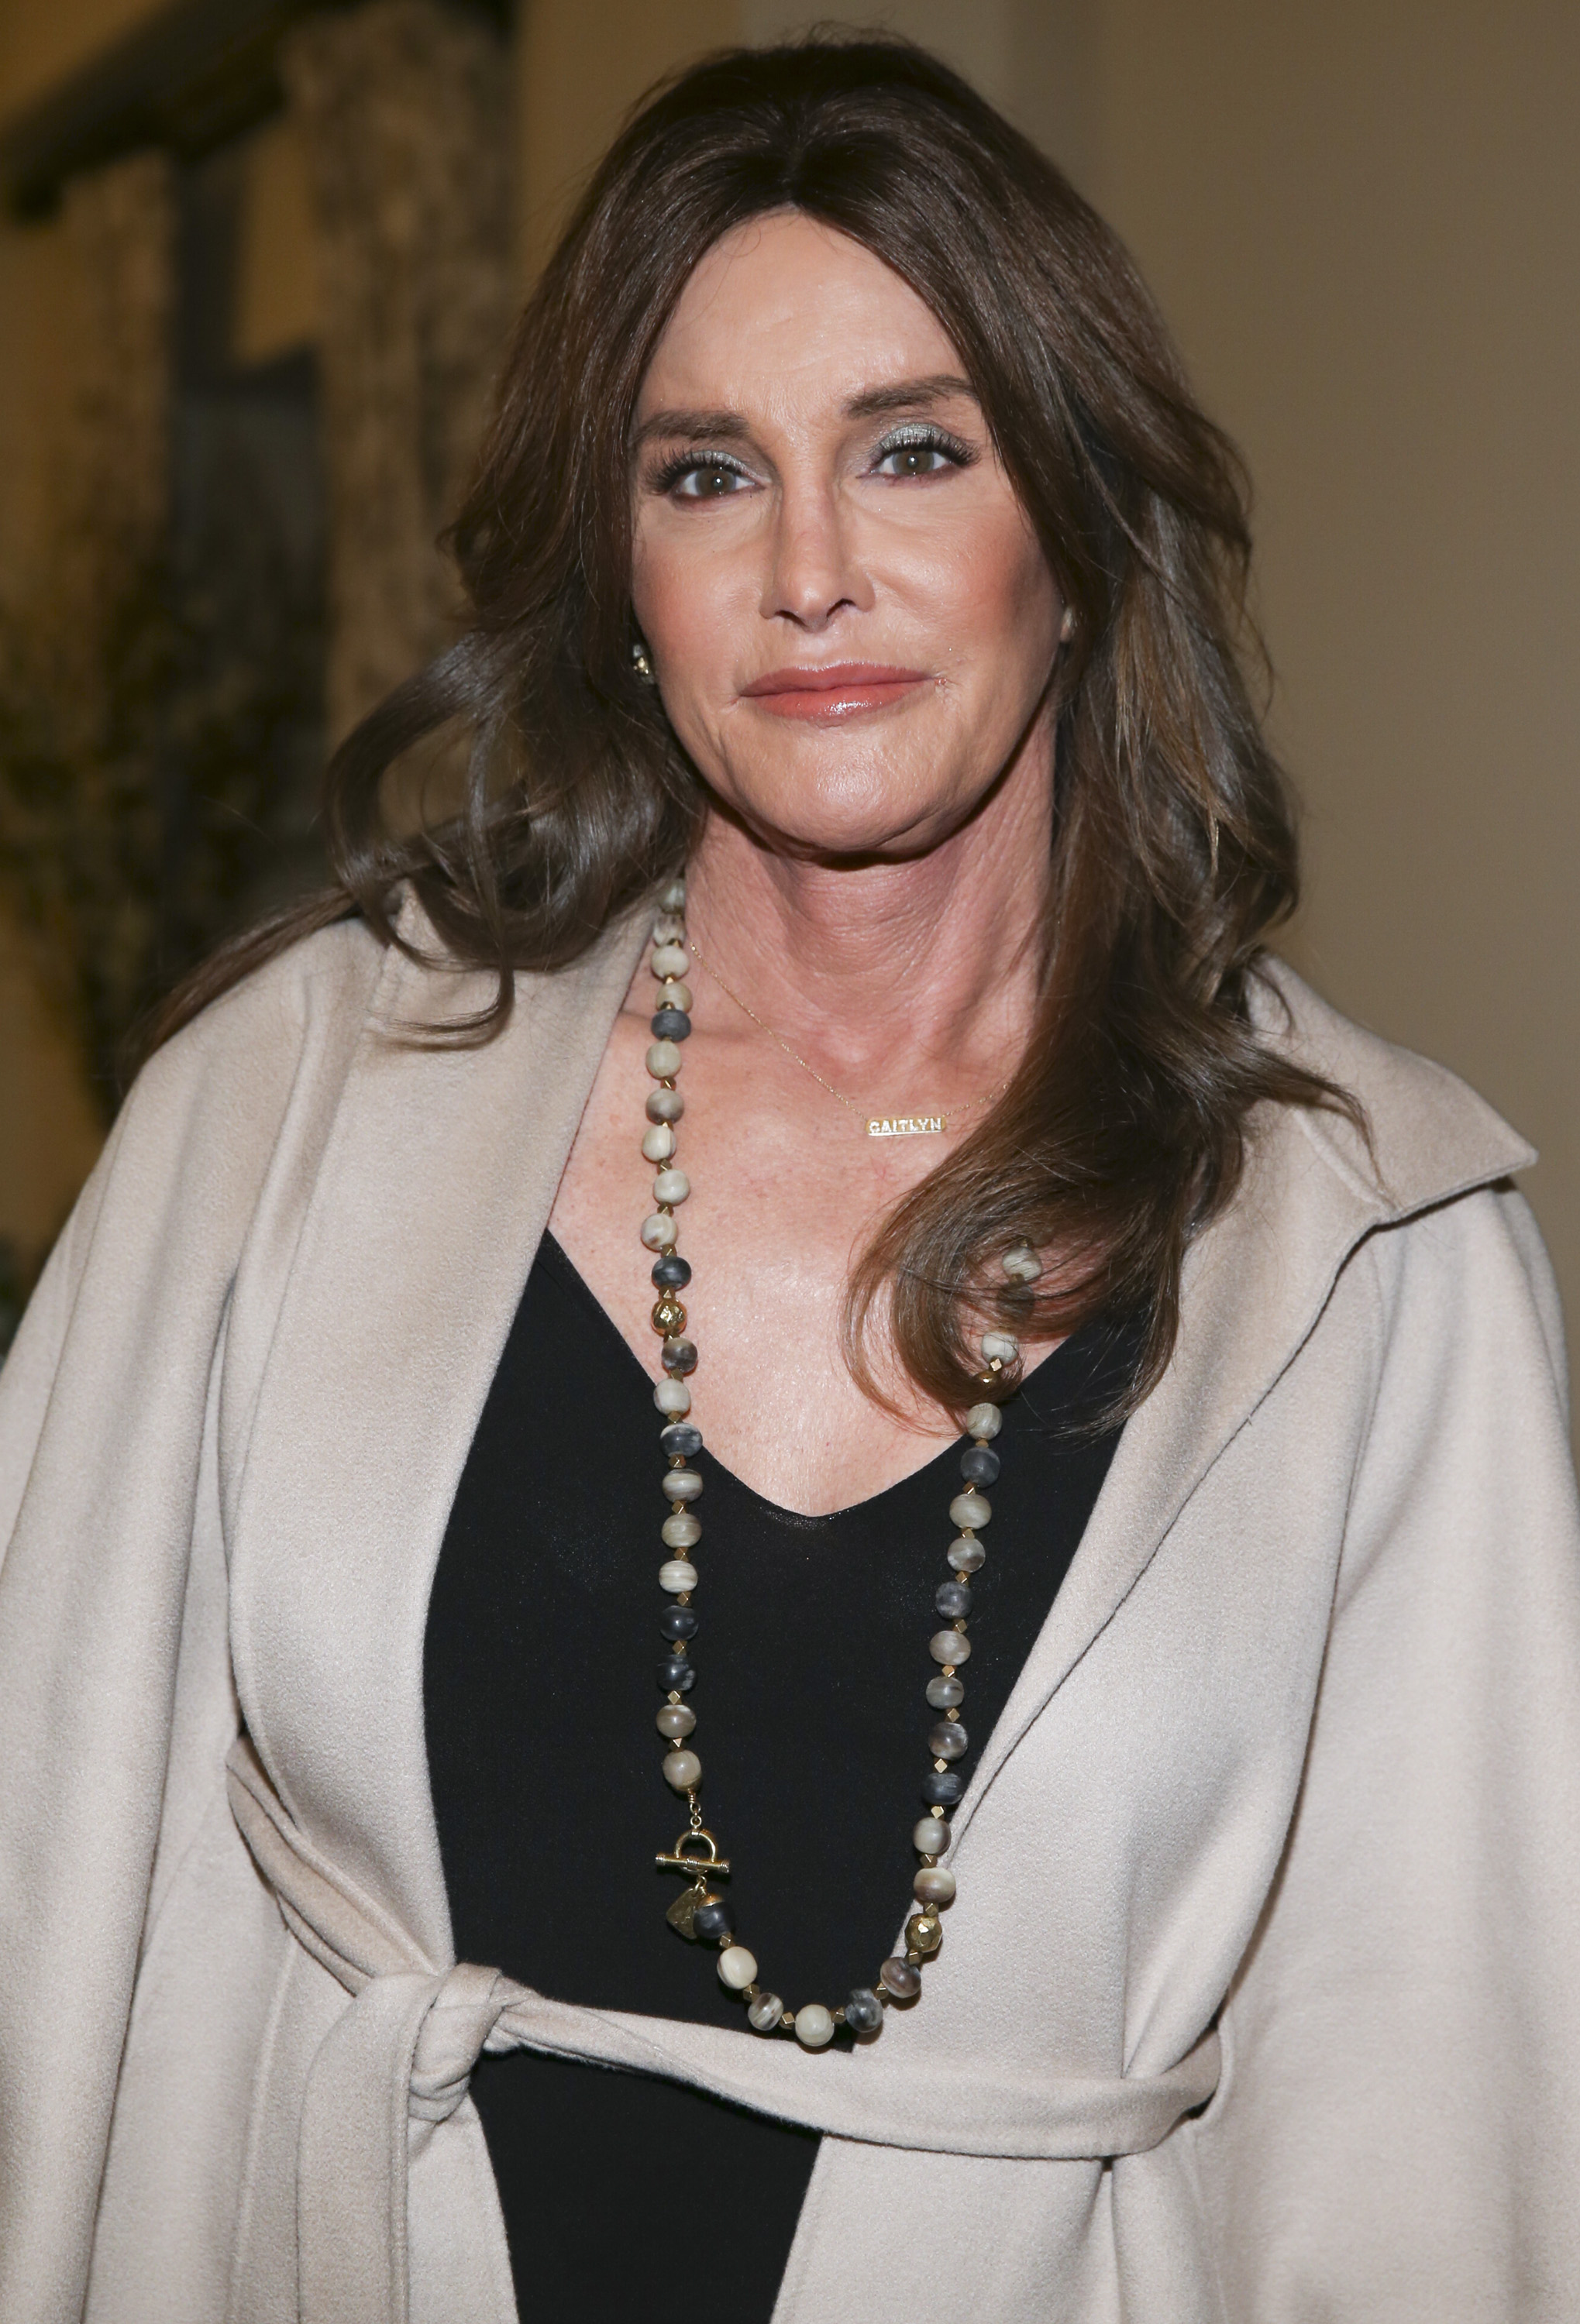 Caitlyn Jenner at the 2016 MAKERS Conference in Rancho Palos Verdes, Calif. on Feb. 1, 2016.